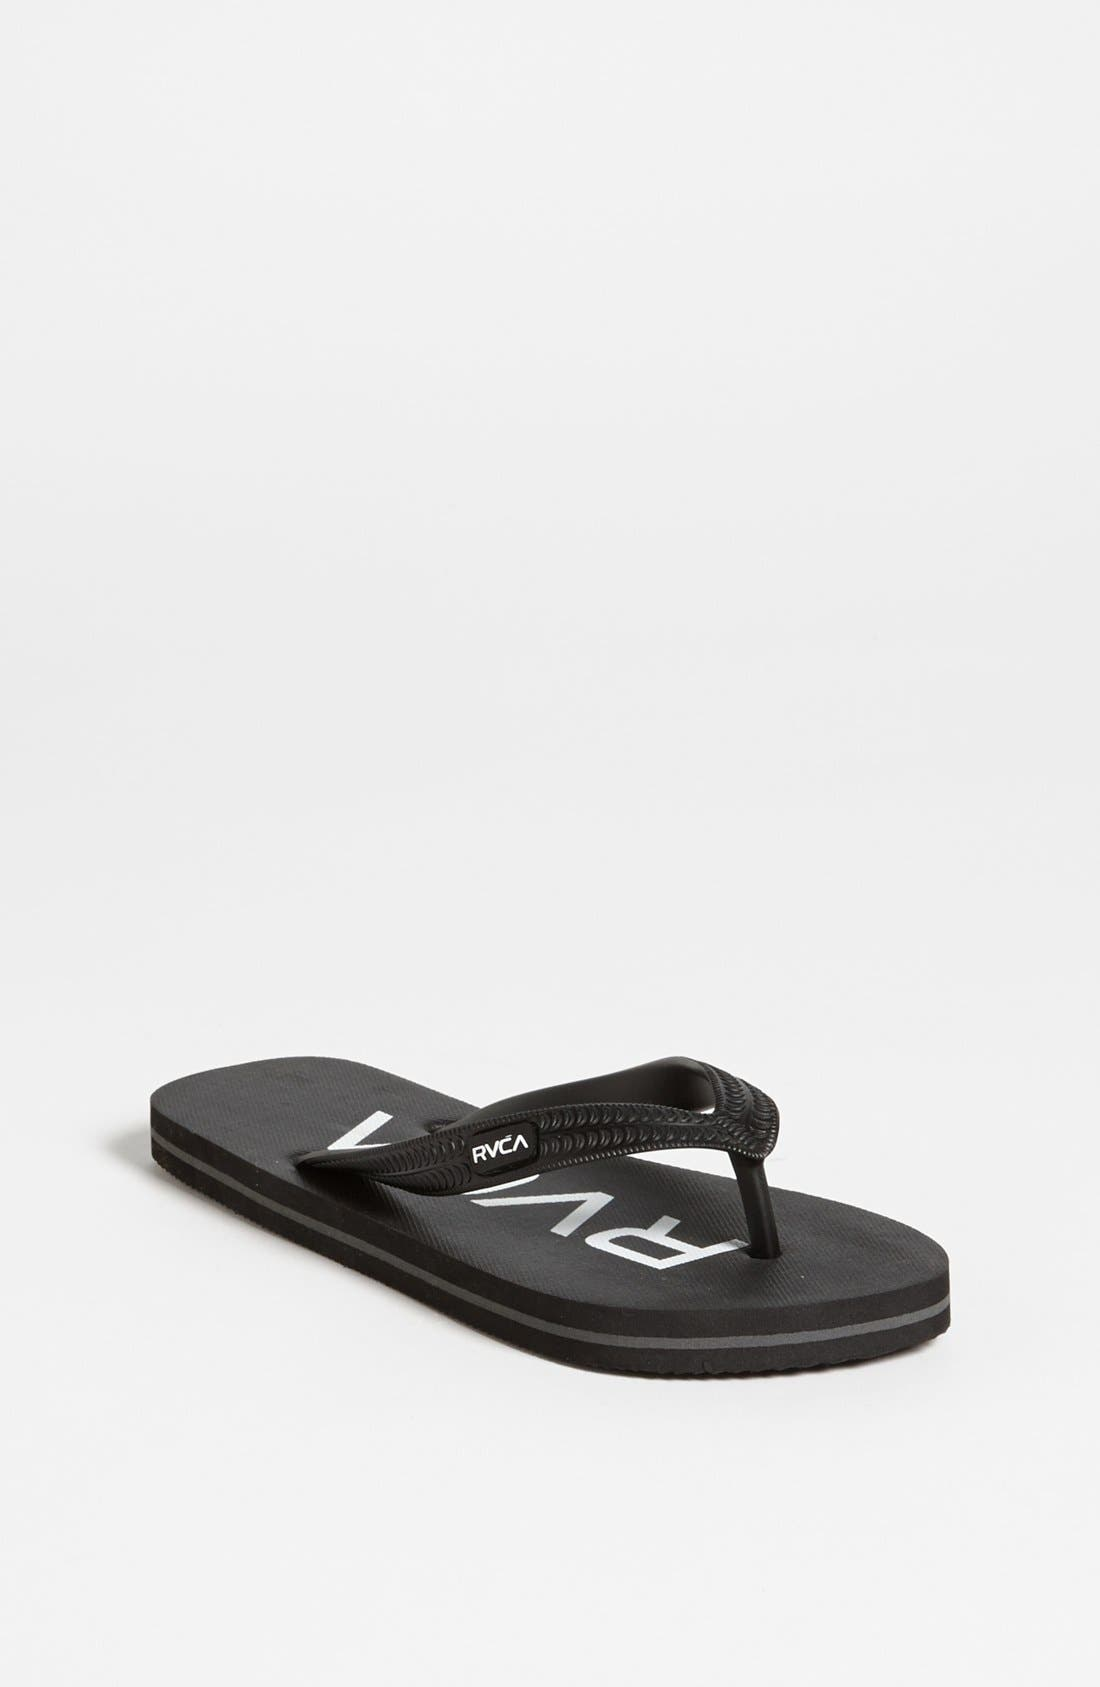 Alternate Image 1 Selected - RVCA 'Sandlot' Flip Flop (Little Boys & Big Boys)